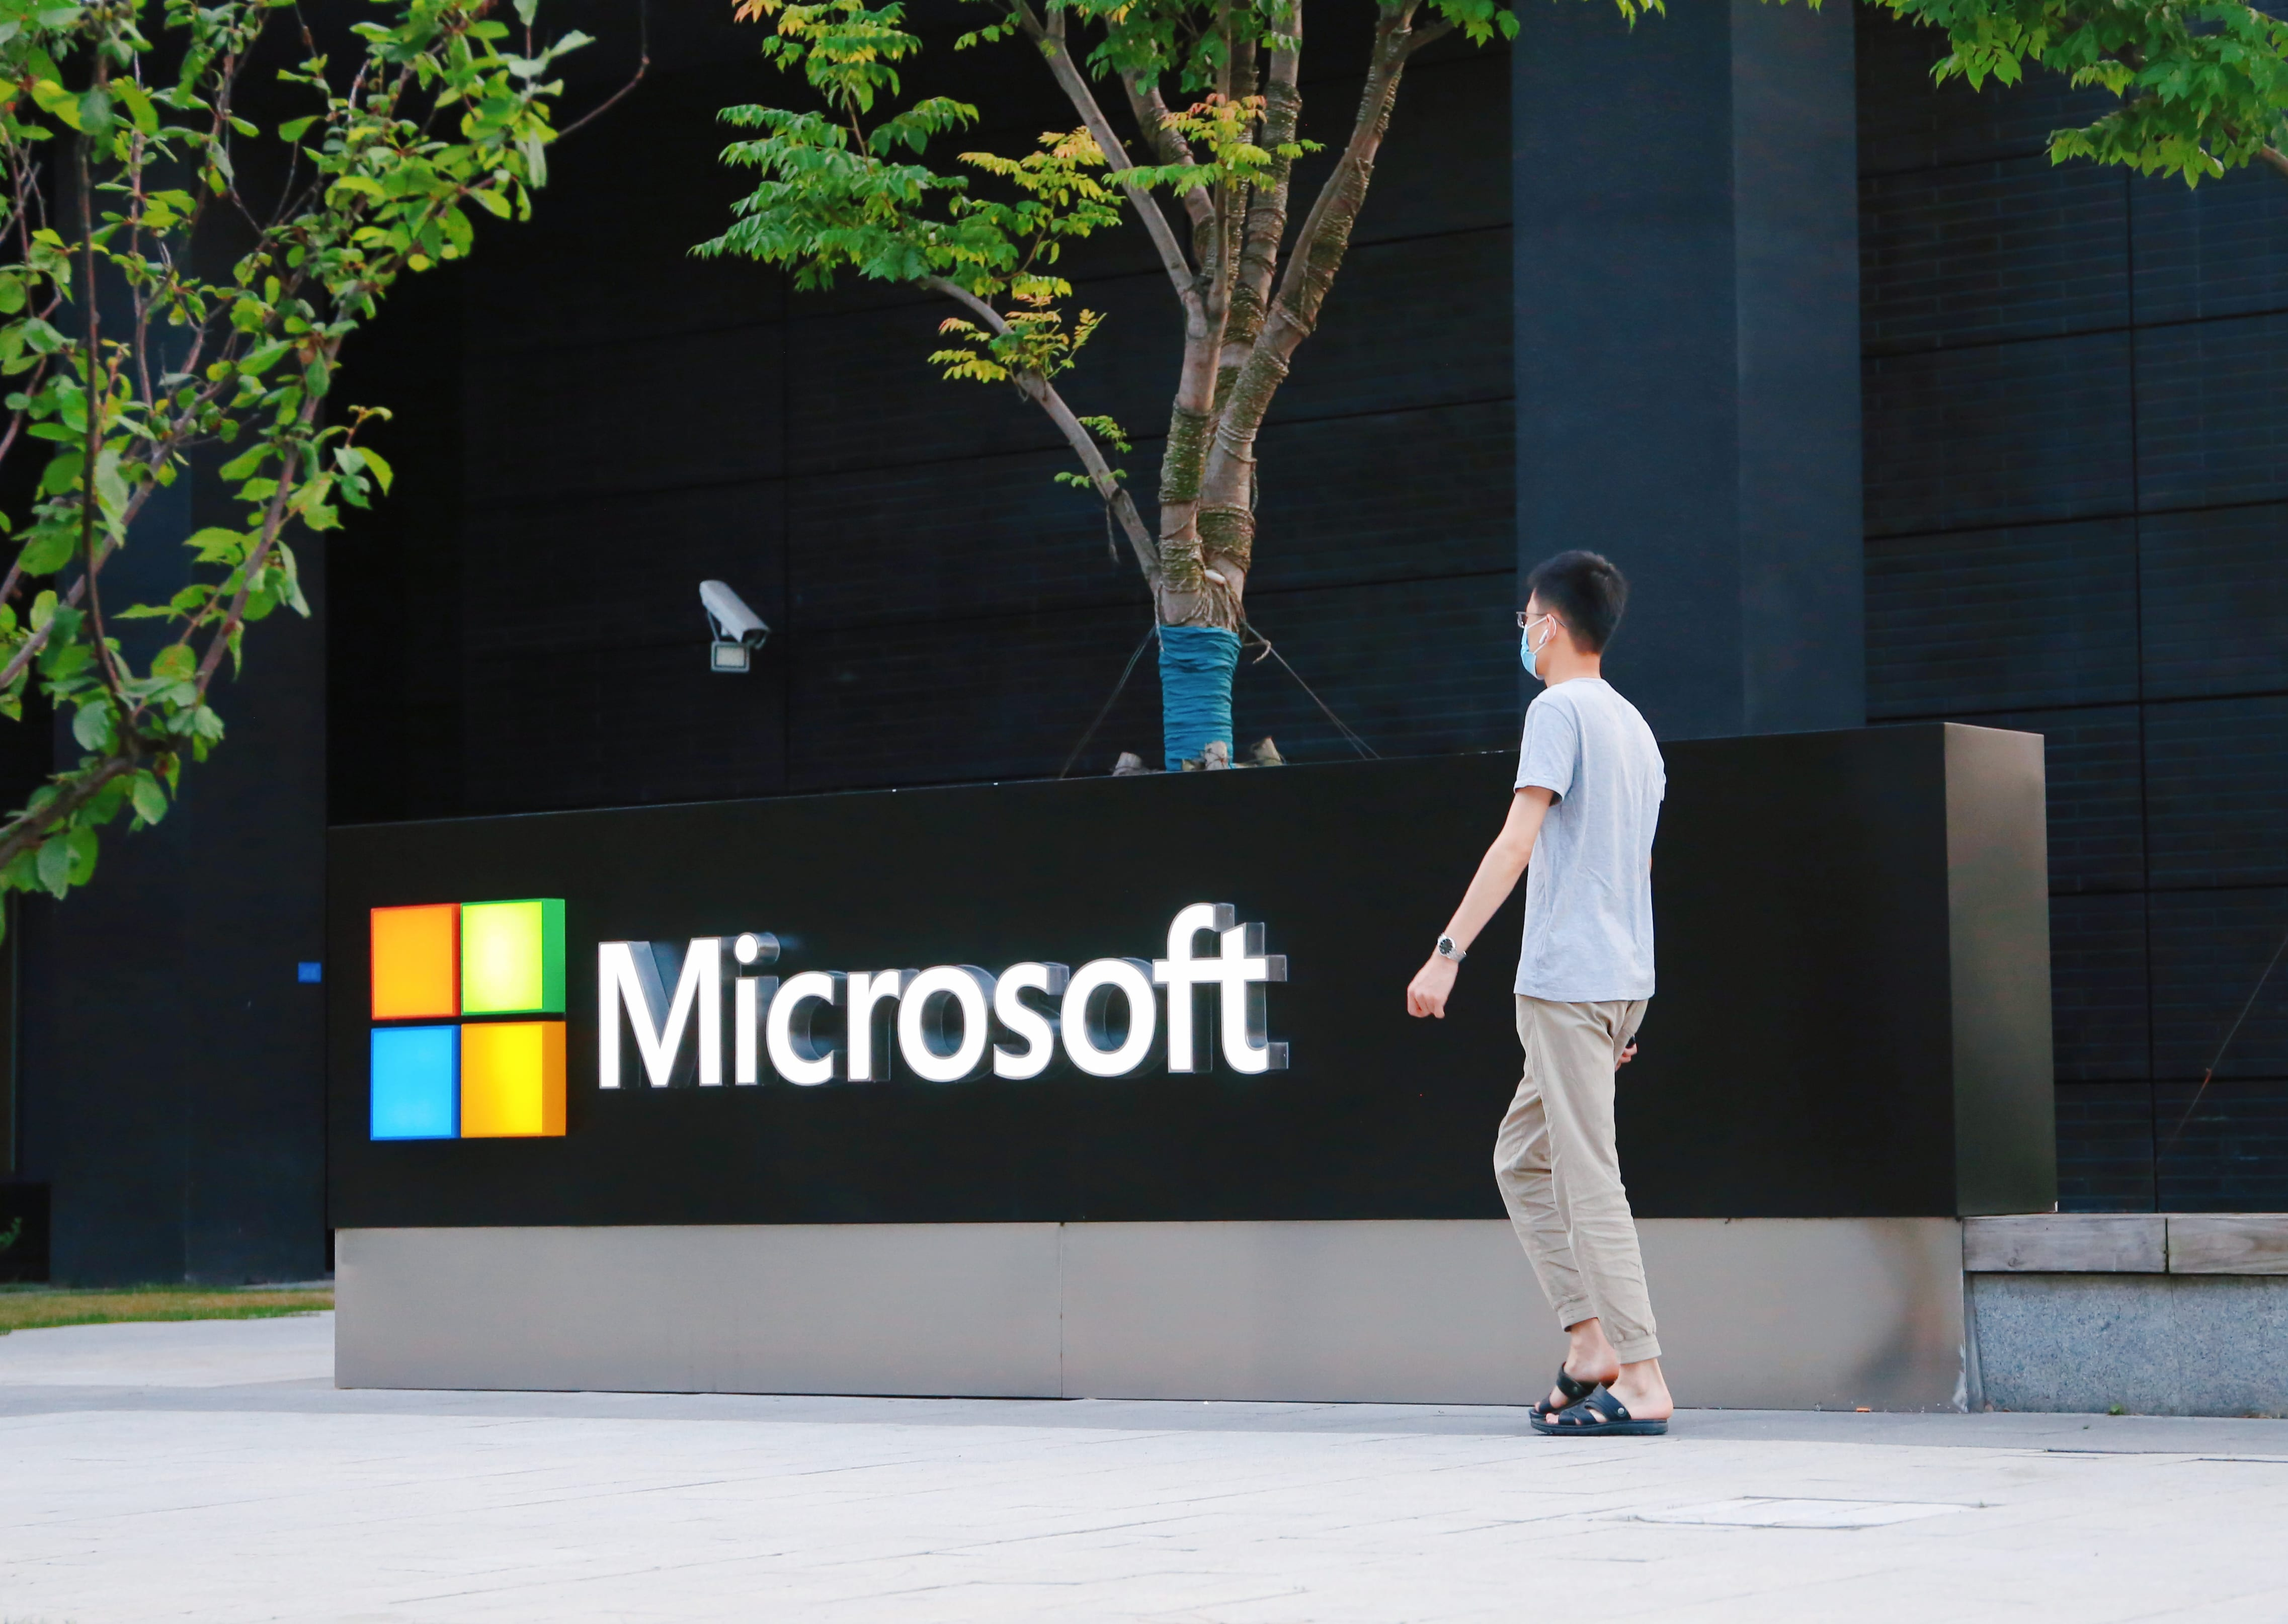 observer.com - Sissi Cao - With TikTok and Other Changes, Microsoft Takes Aim At Facebook and Google